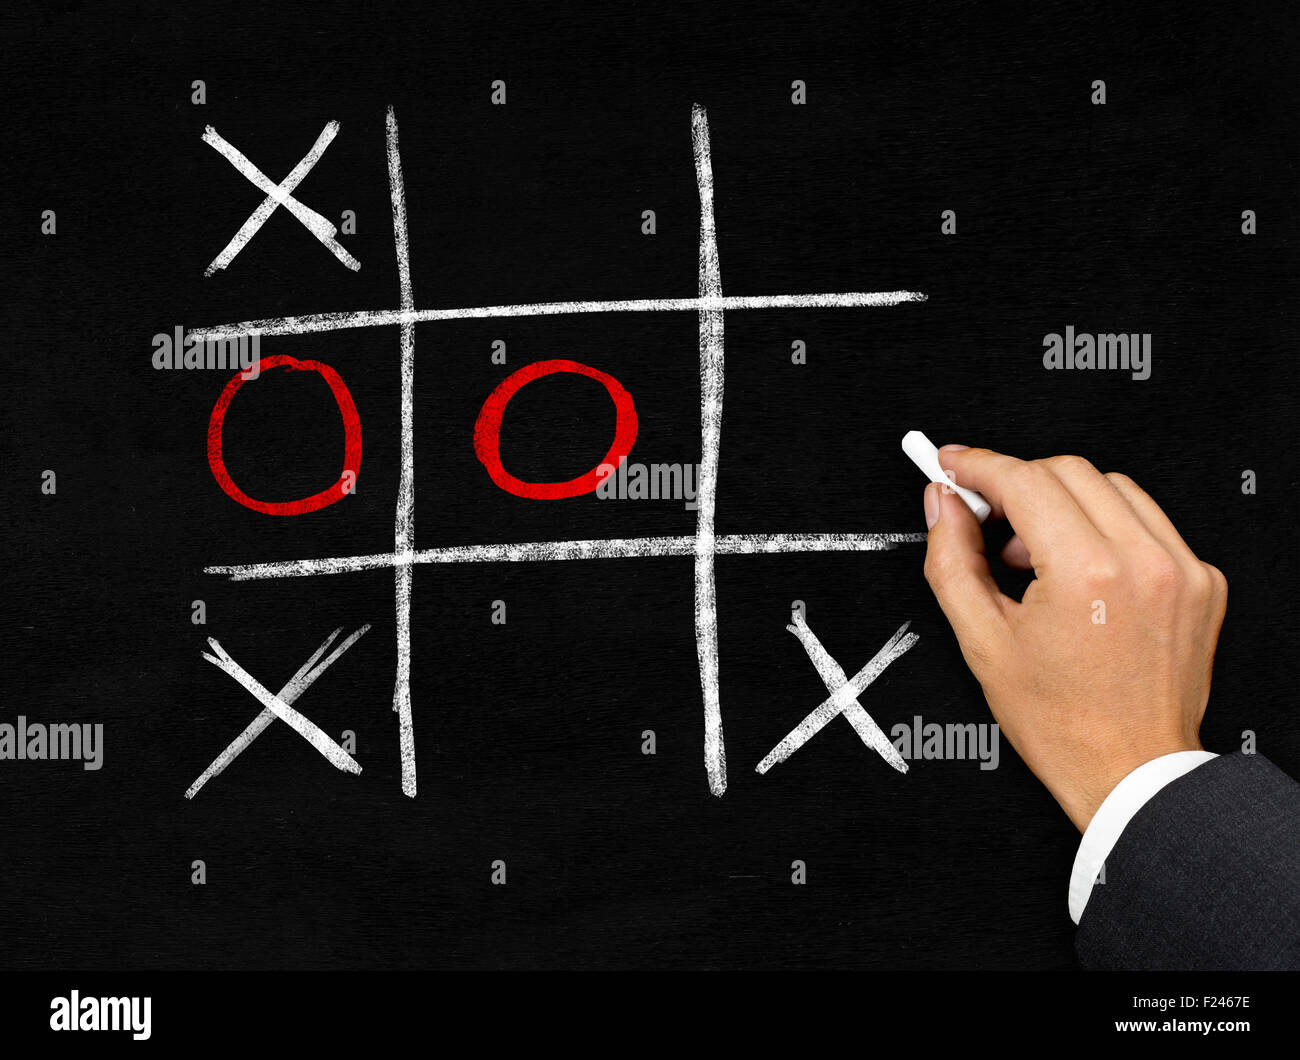 Man drawing tic-tac-toe game with chalk on blackboard background - Stock Image